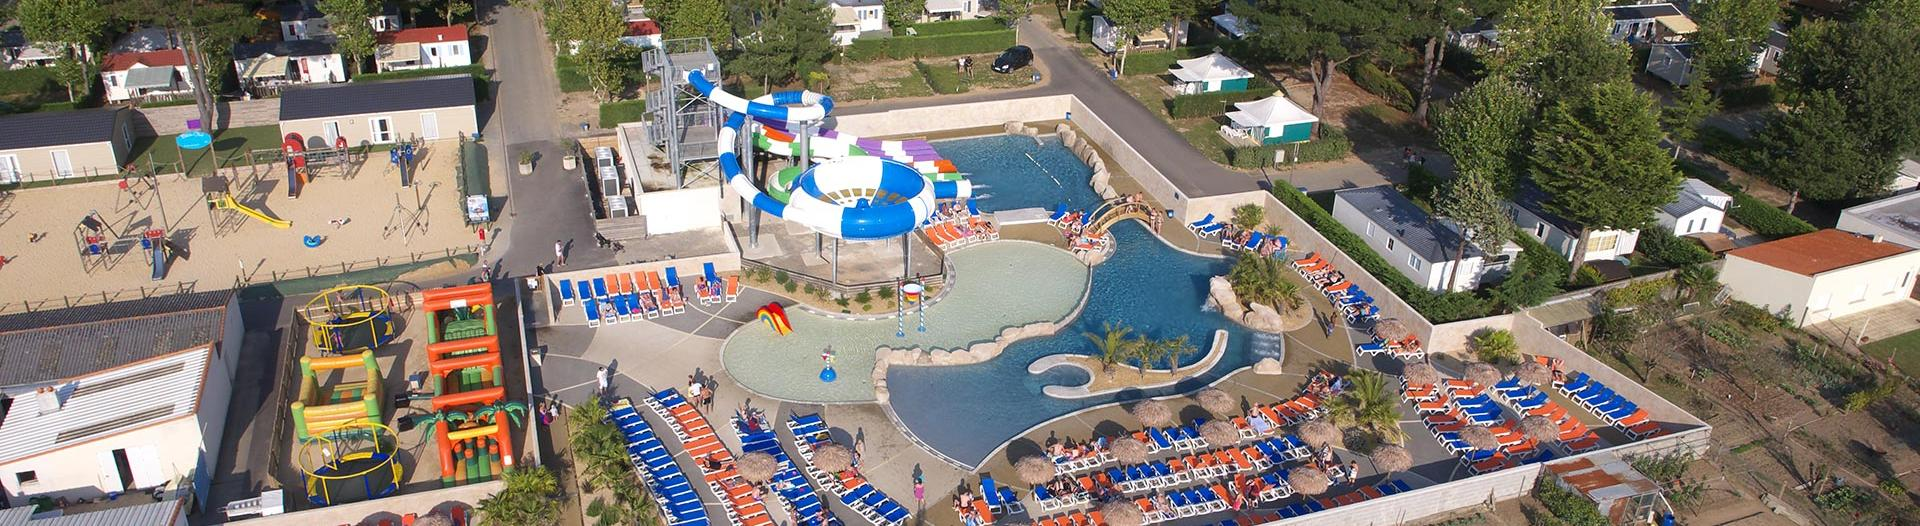 slider-camping-le-trianon-parc-aquatique